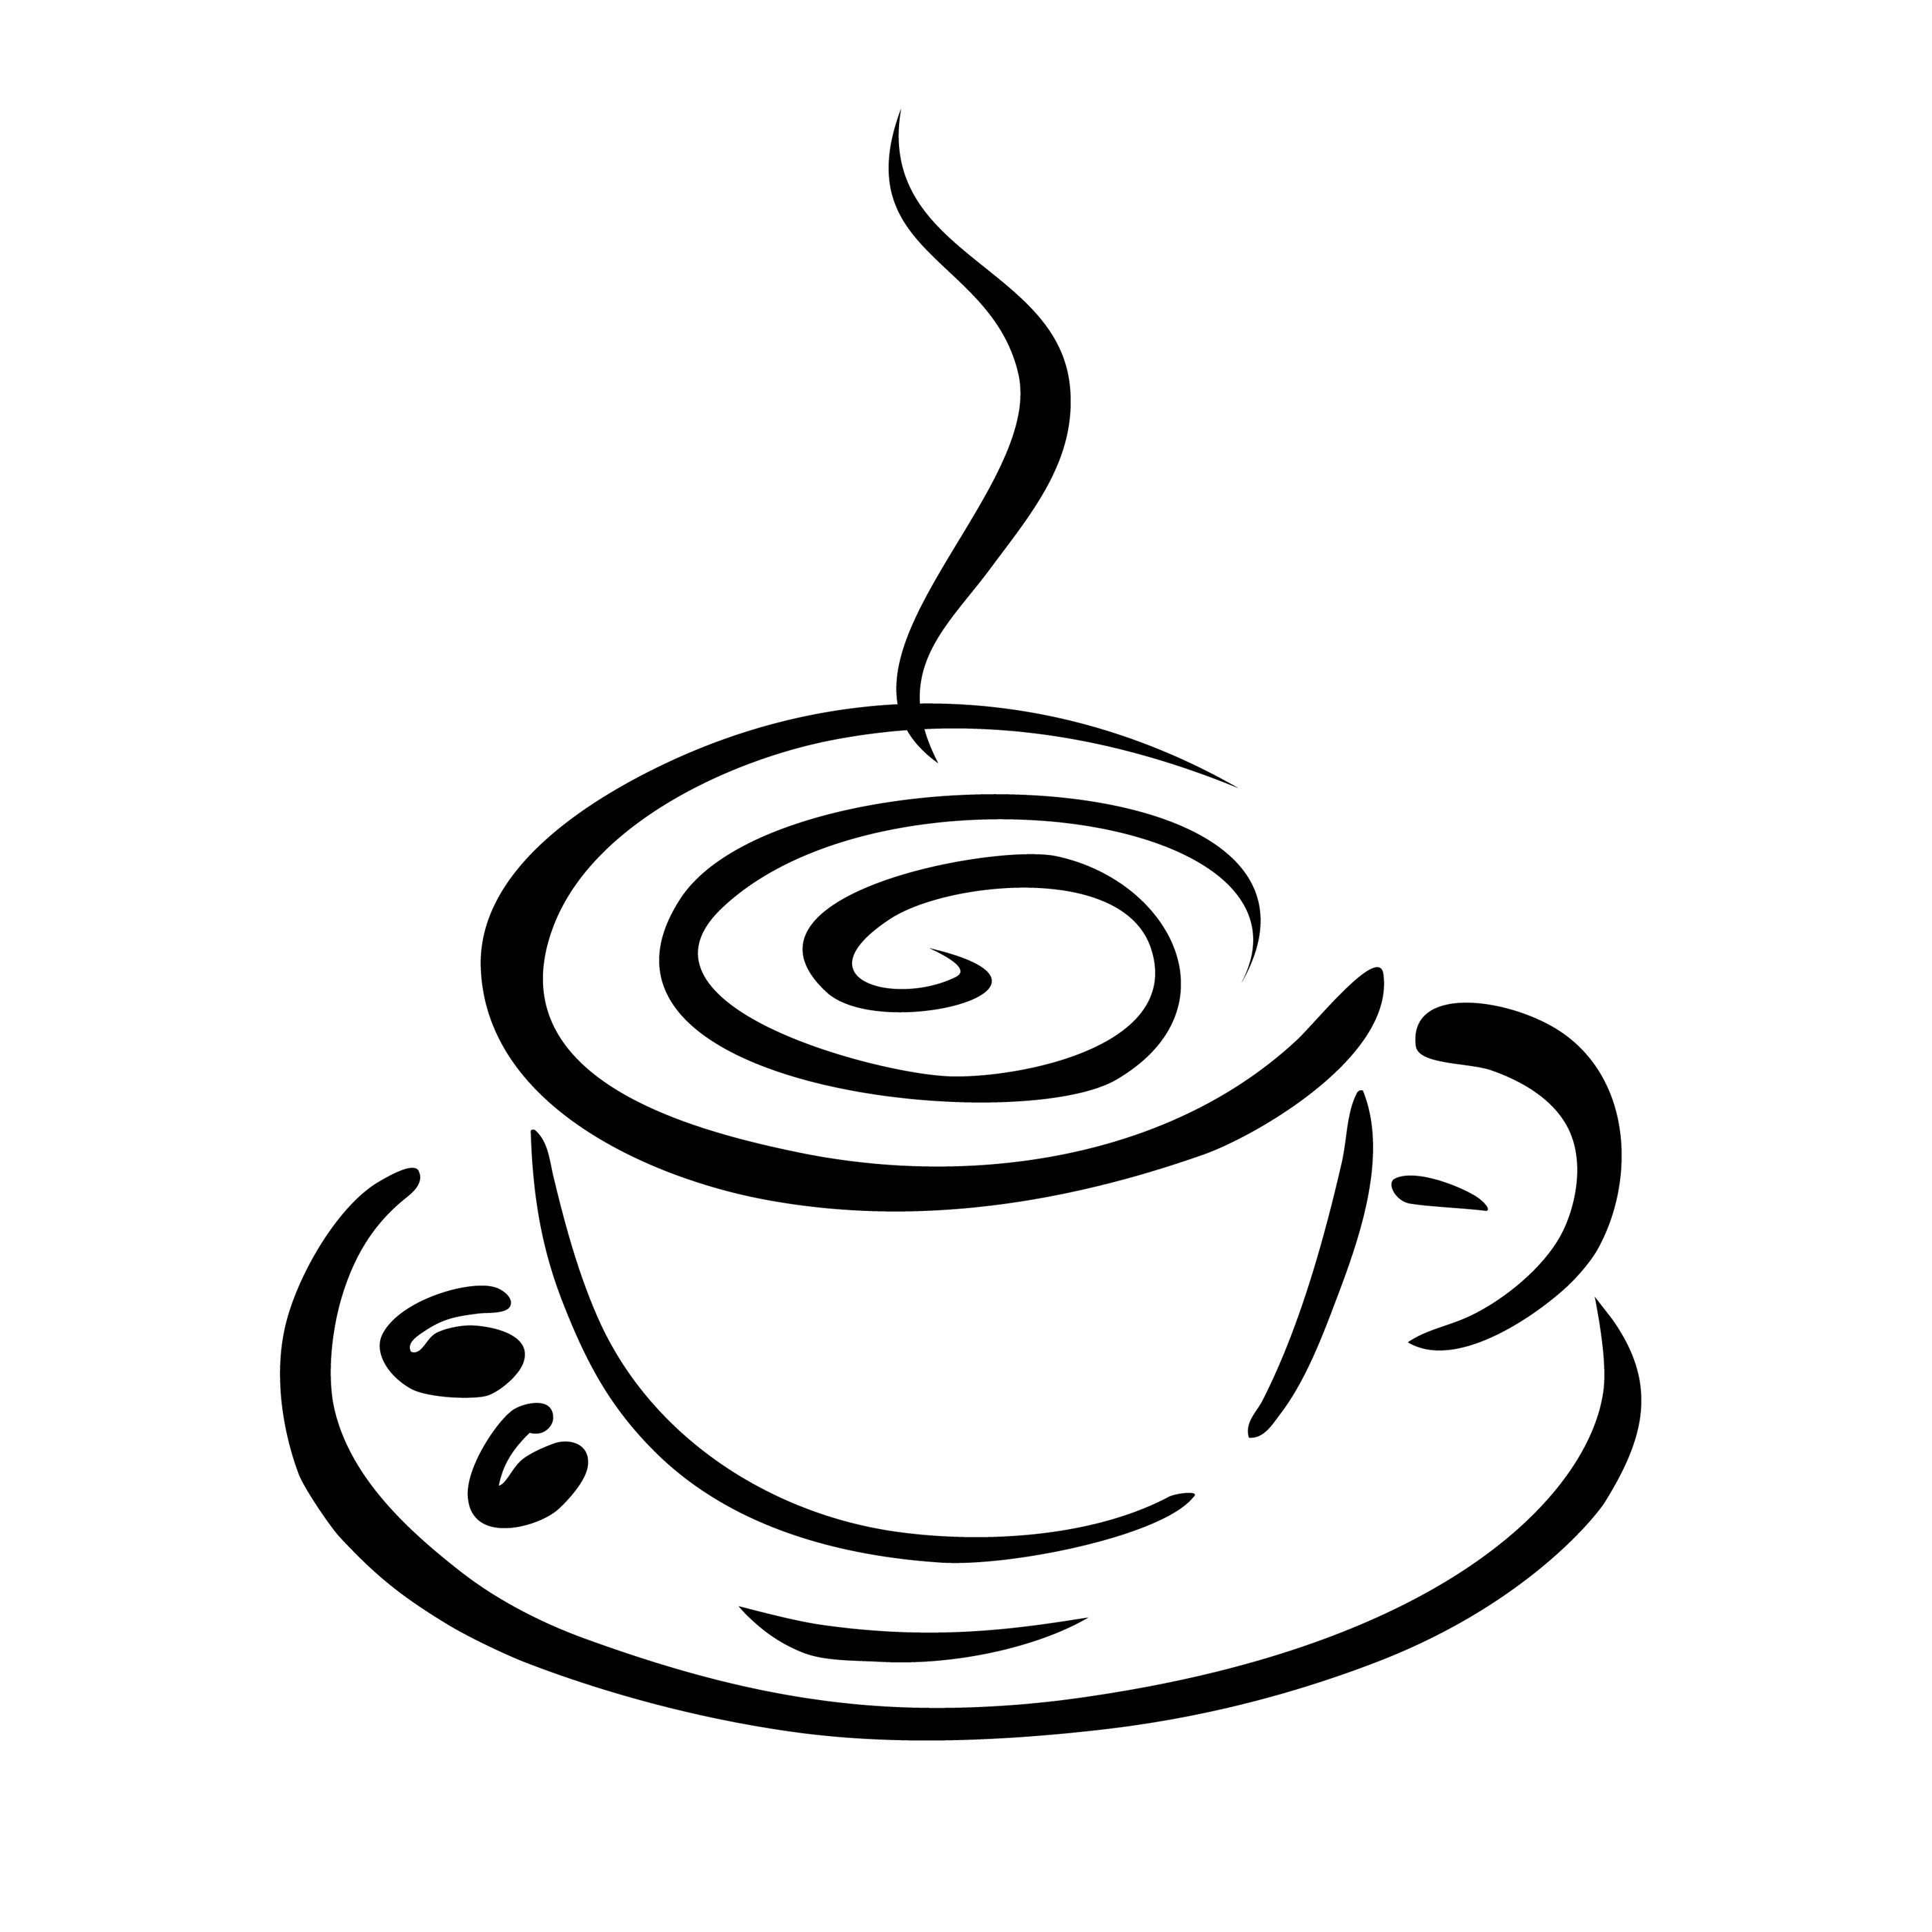 Coffee Cup Black And White Clipart - Clipart Kid   Clipart ...